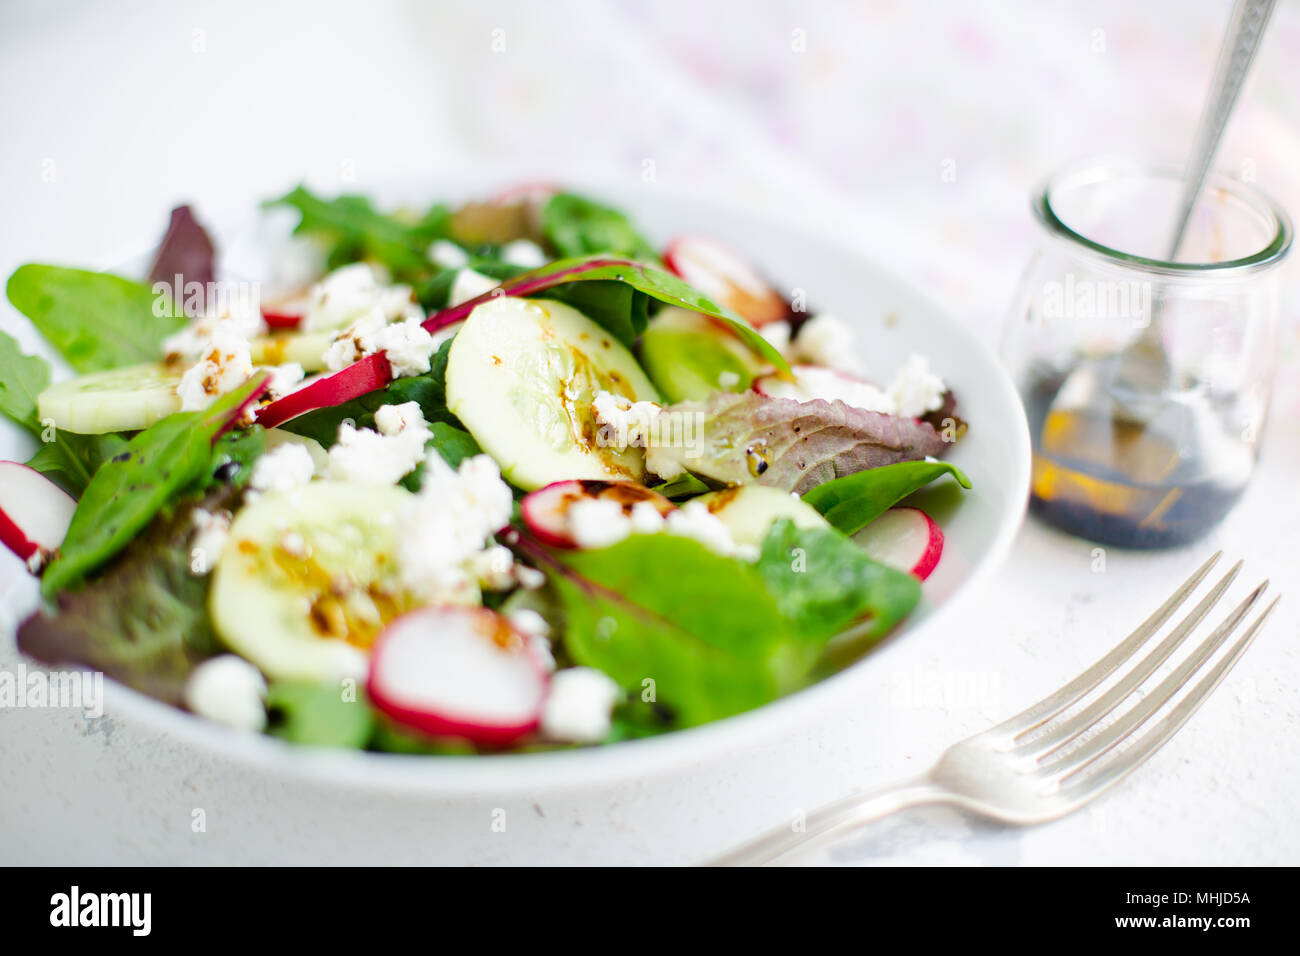 Mixed salad with baby leaves of red lettuce, tatsoi, arugula, red chard, radish, cucumber and feta cheese with olive oil and balsamic vinegar dressing - Stock Image